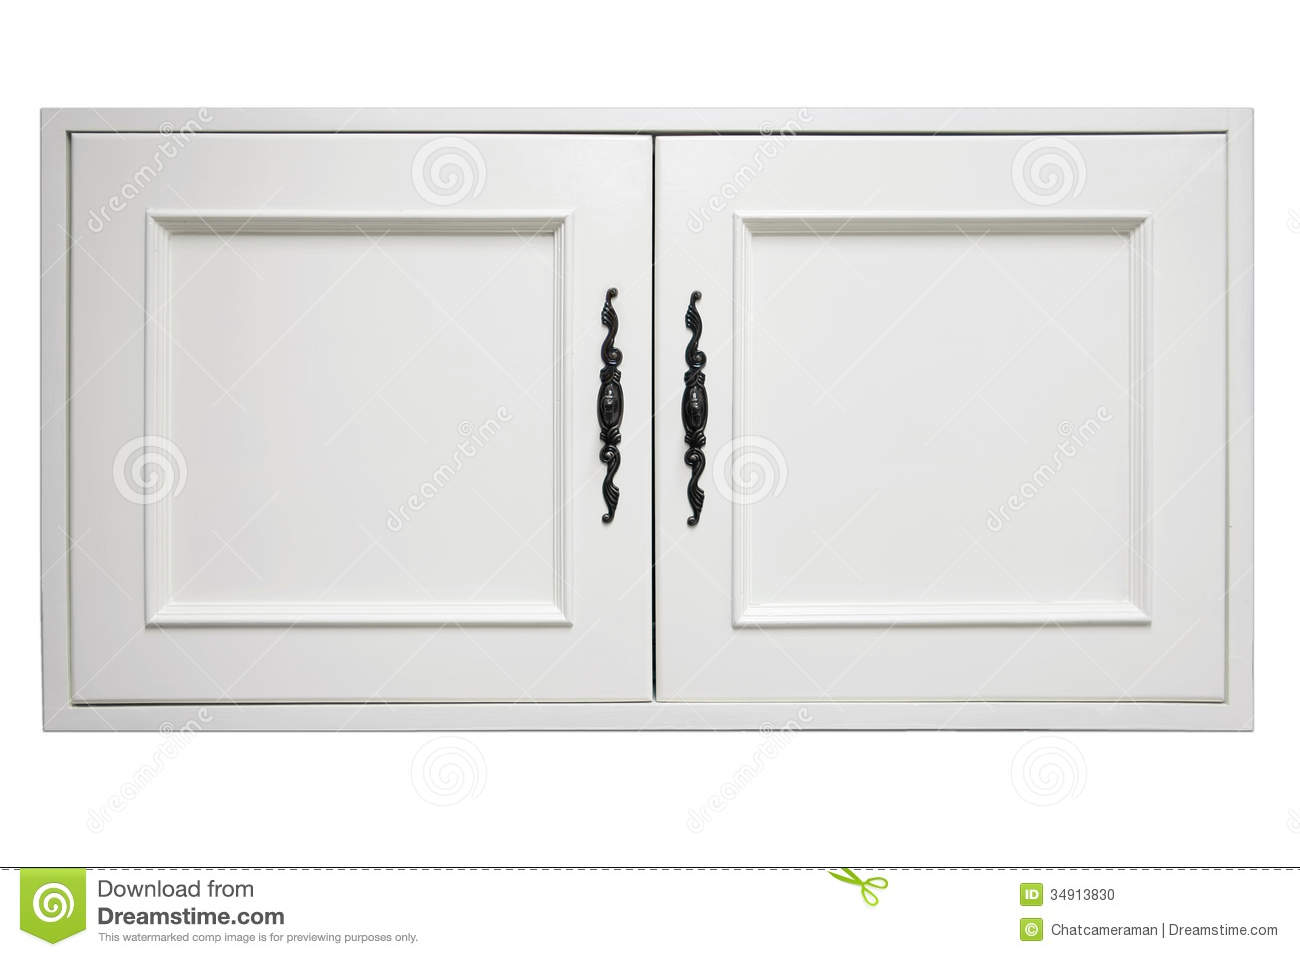 Wooden door of cupboard  sc 1 st  Dreamstime.com & Wooden door of cupboard stock photo. Image of colored - 34913830